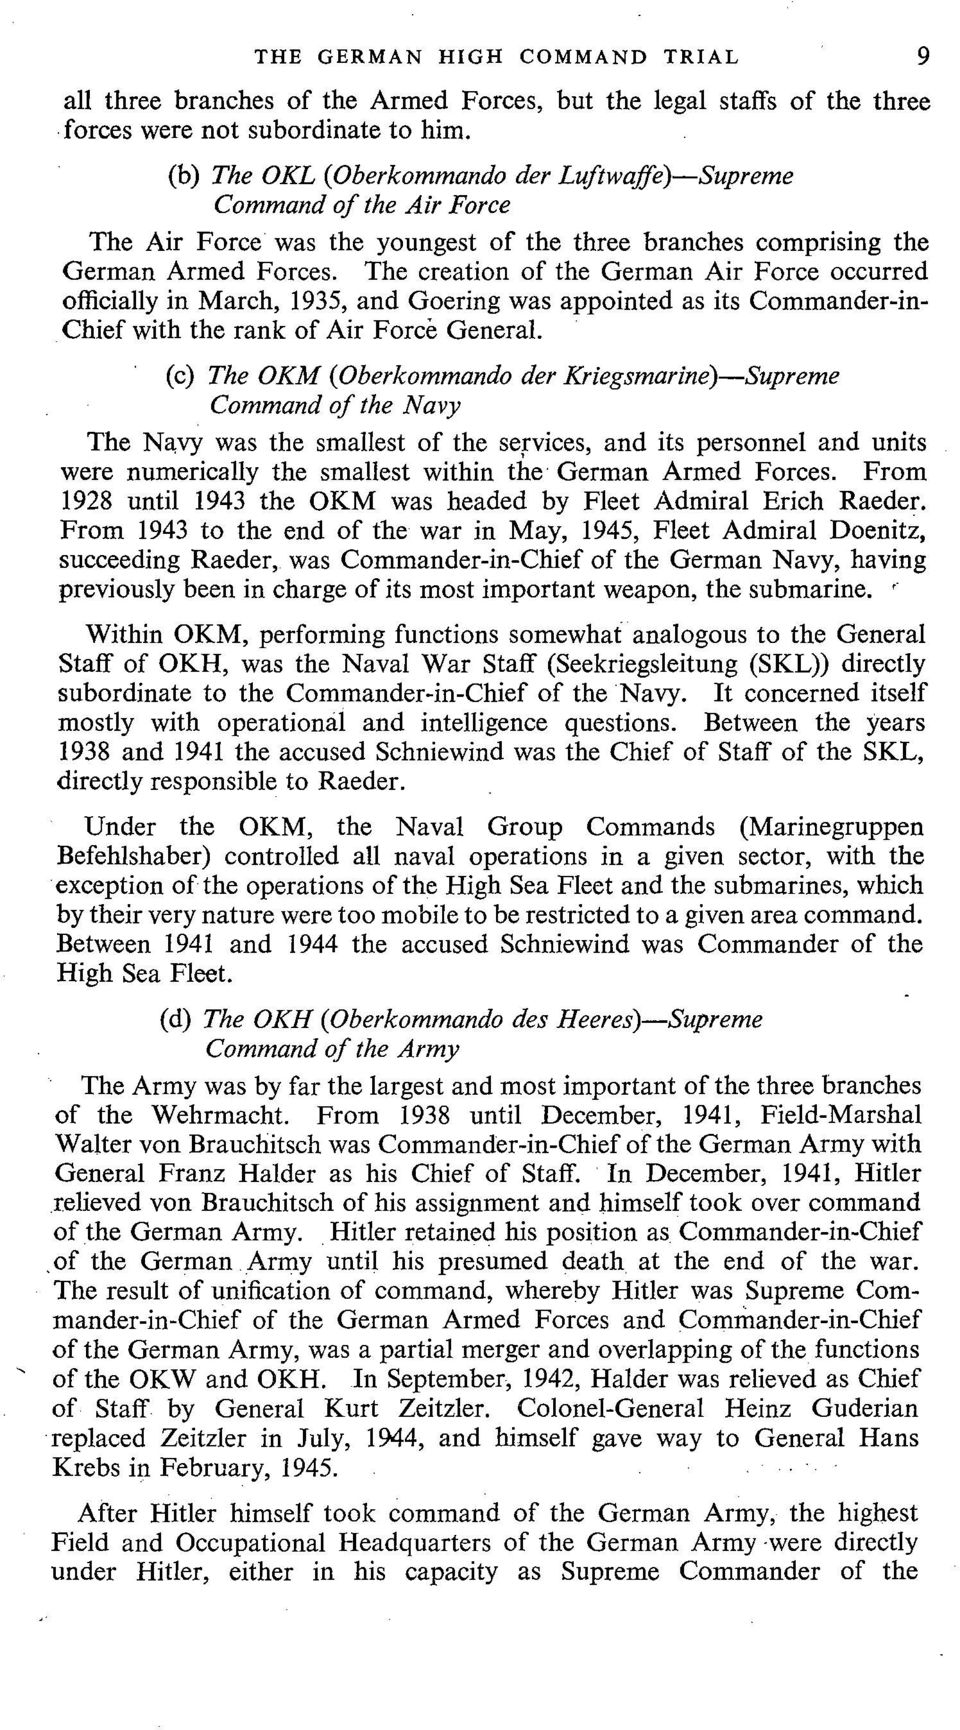 The creation of the German Air Force occurred officially in March, 1935, and Goering was appointed as its Commander-in Chief with the rank of Air Force General.